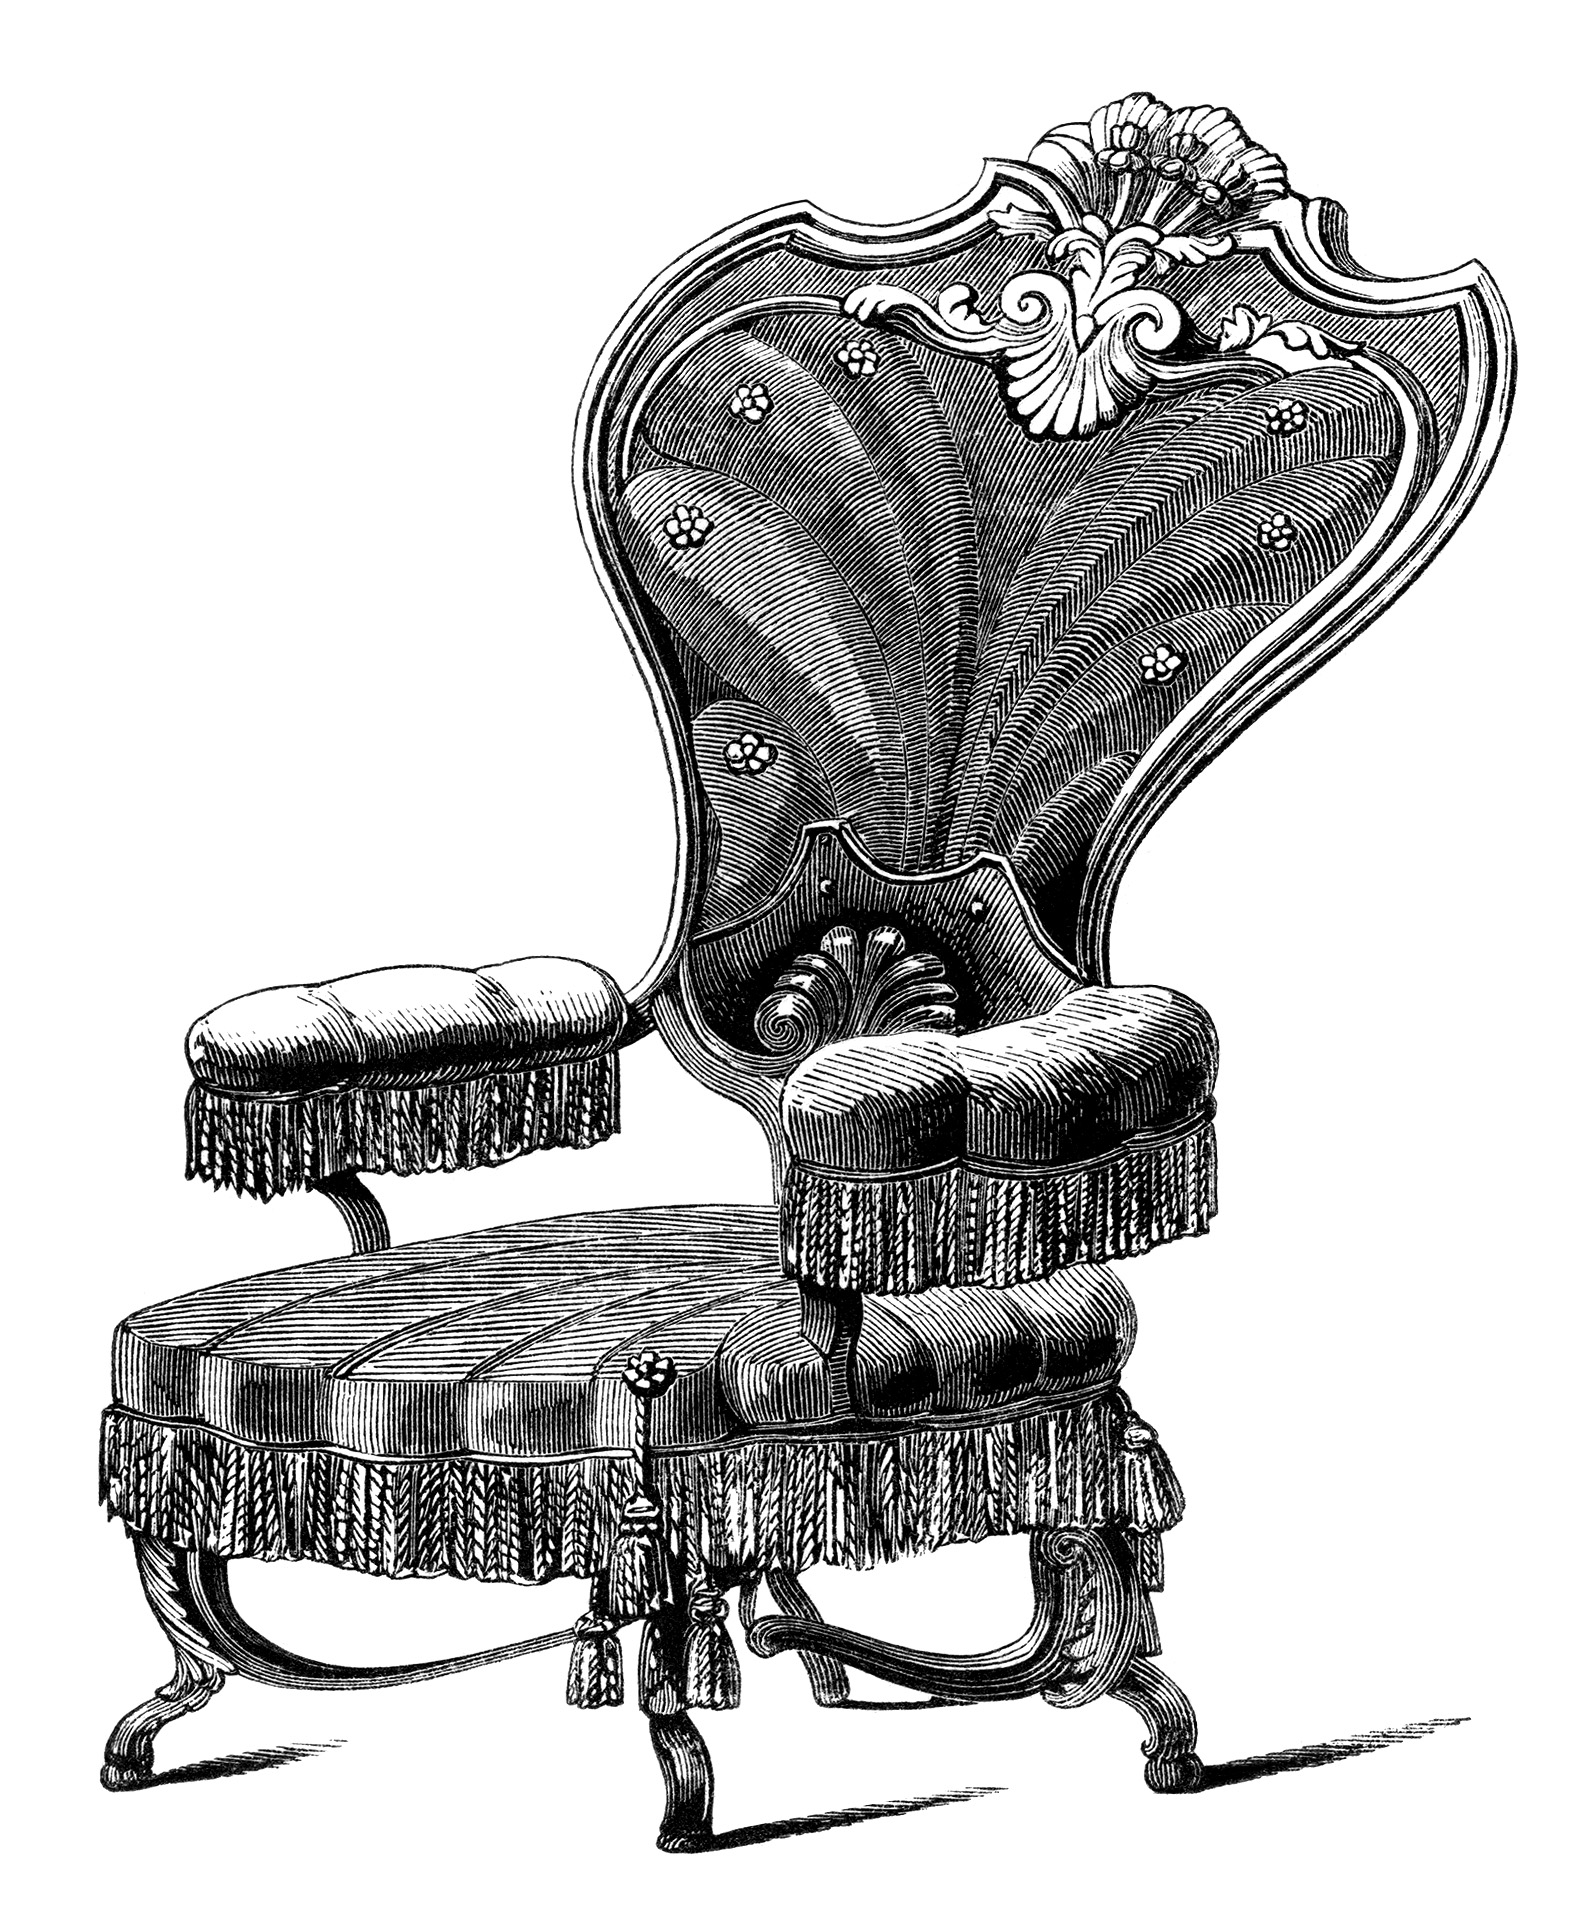 Antique chairs design -  Vintage Chair Clip Art Black And White Clipart Antique Chair Engraving Old Fashioned